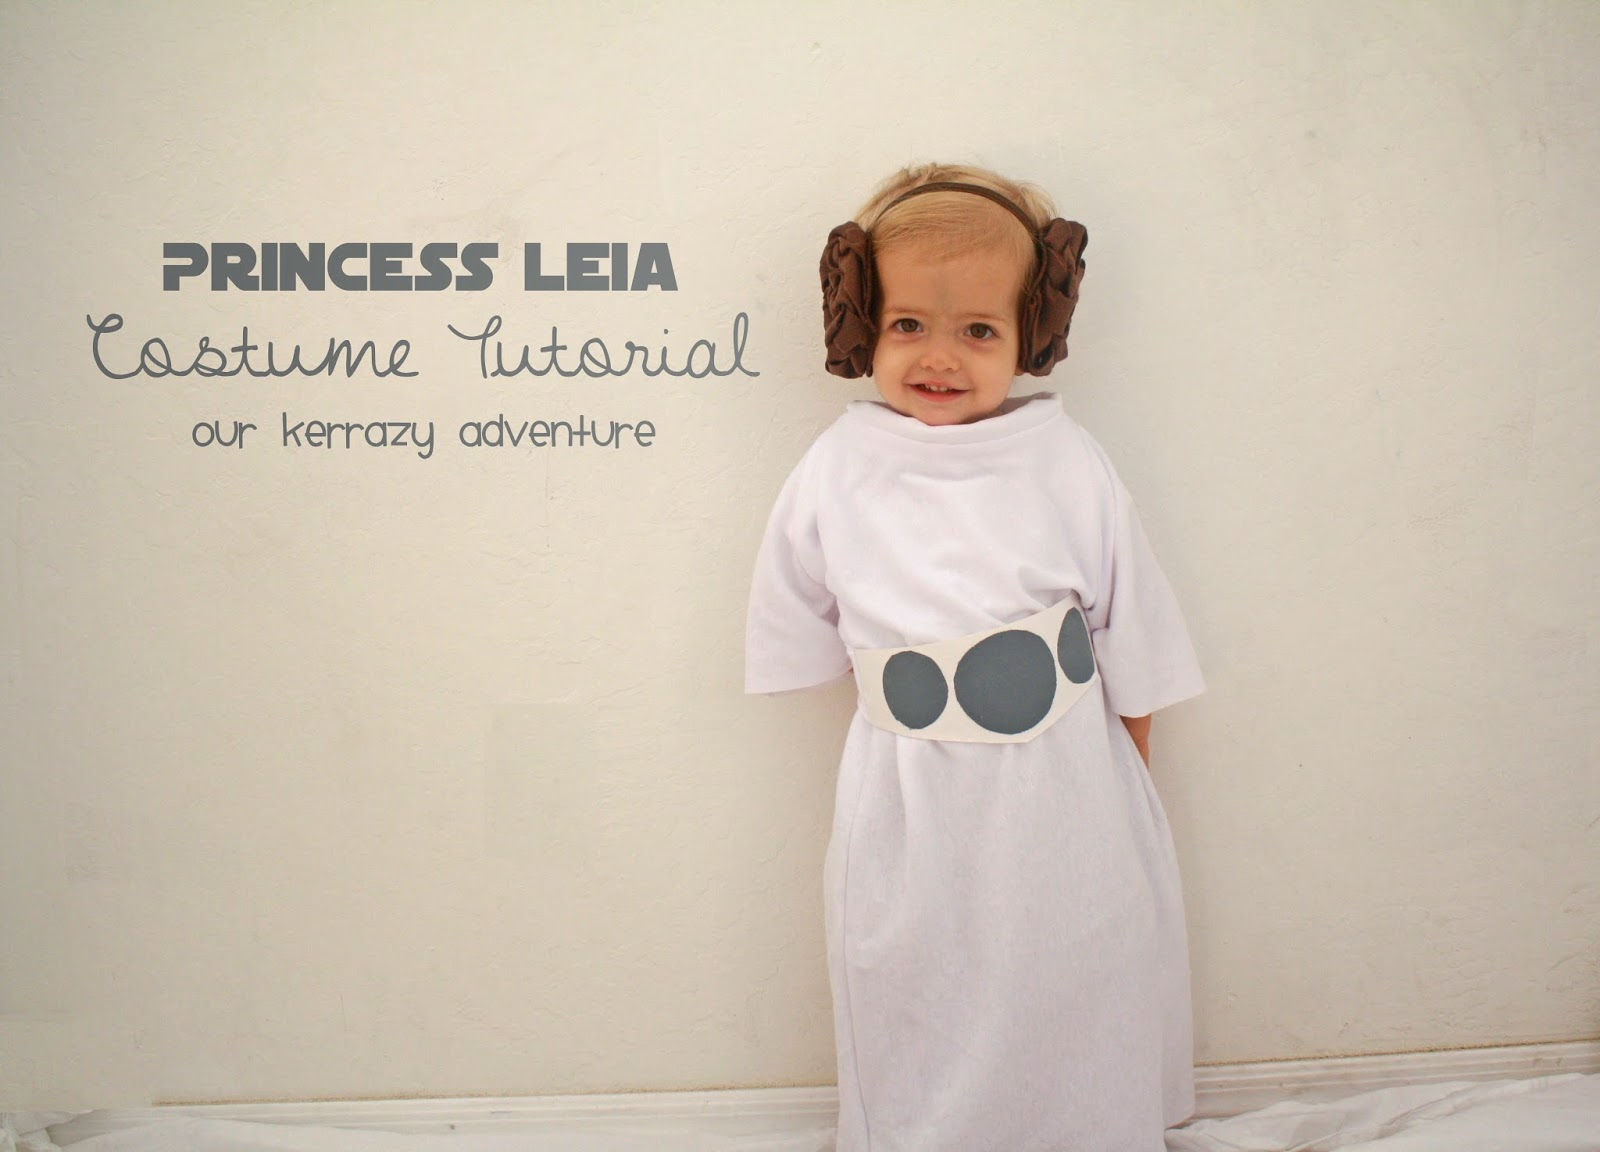 Princess Leia Costume Tutorial  sc 1 st  Our Kerrazy Adventure & Princess Leia Costume Tutorial - Our Kerrazy Adventure